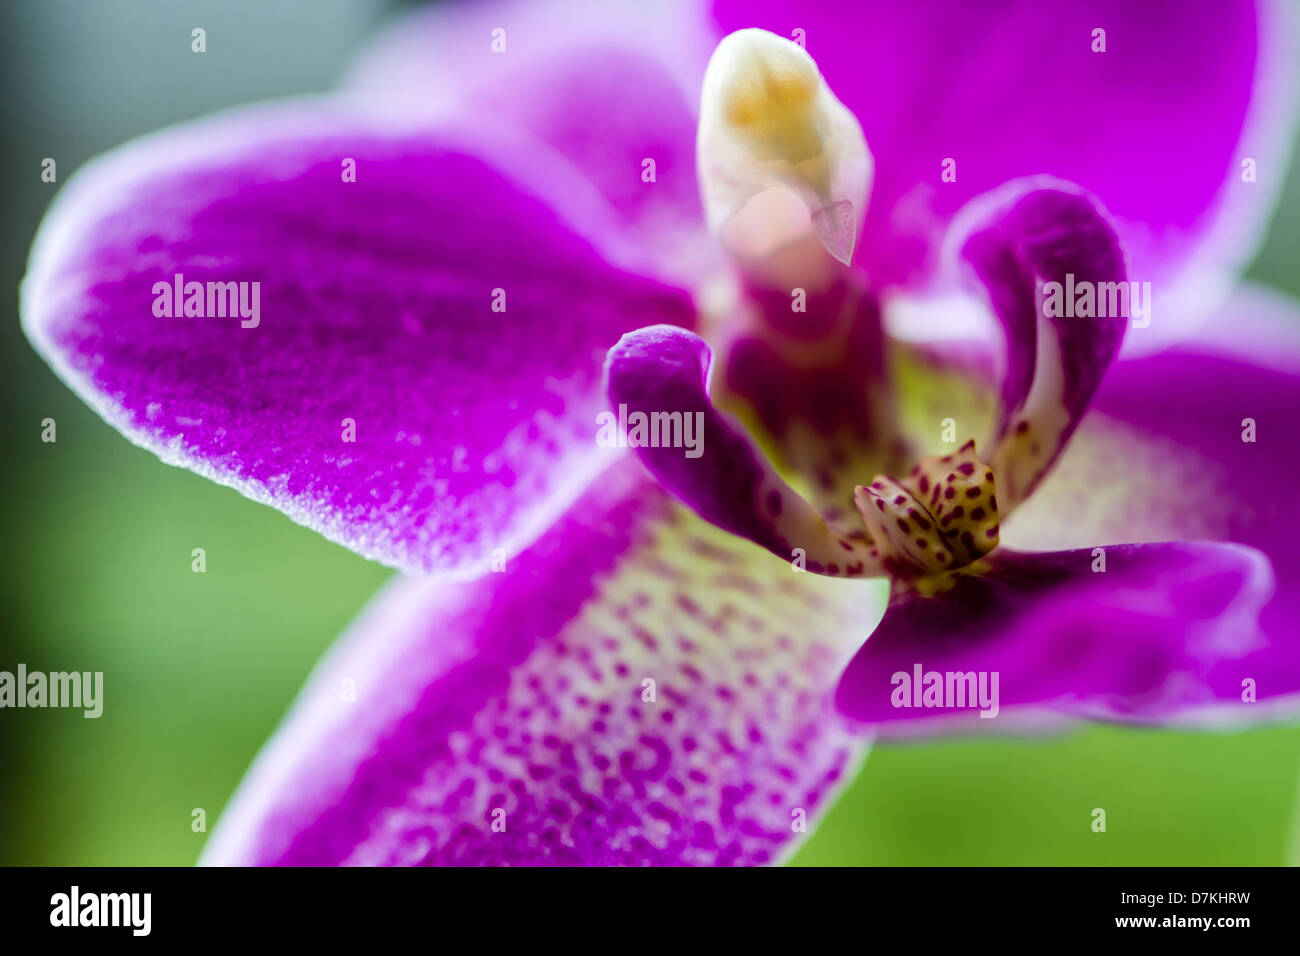 Macro photo of a purple orchid - Stock Image